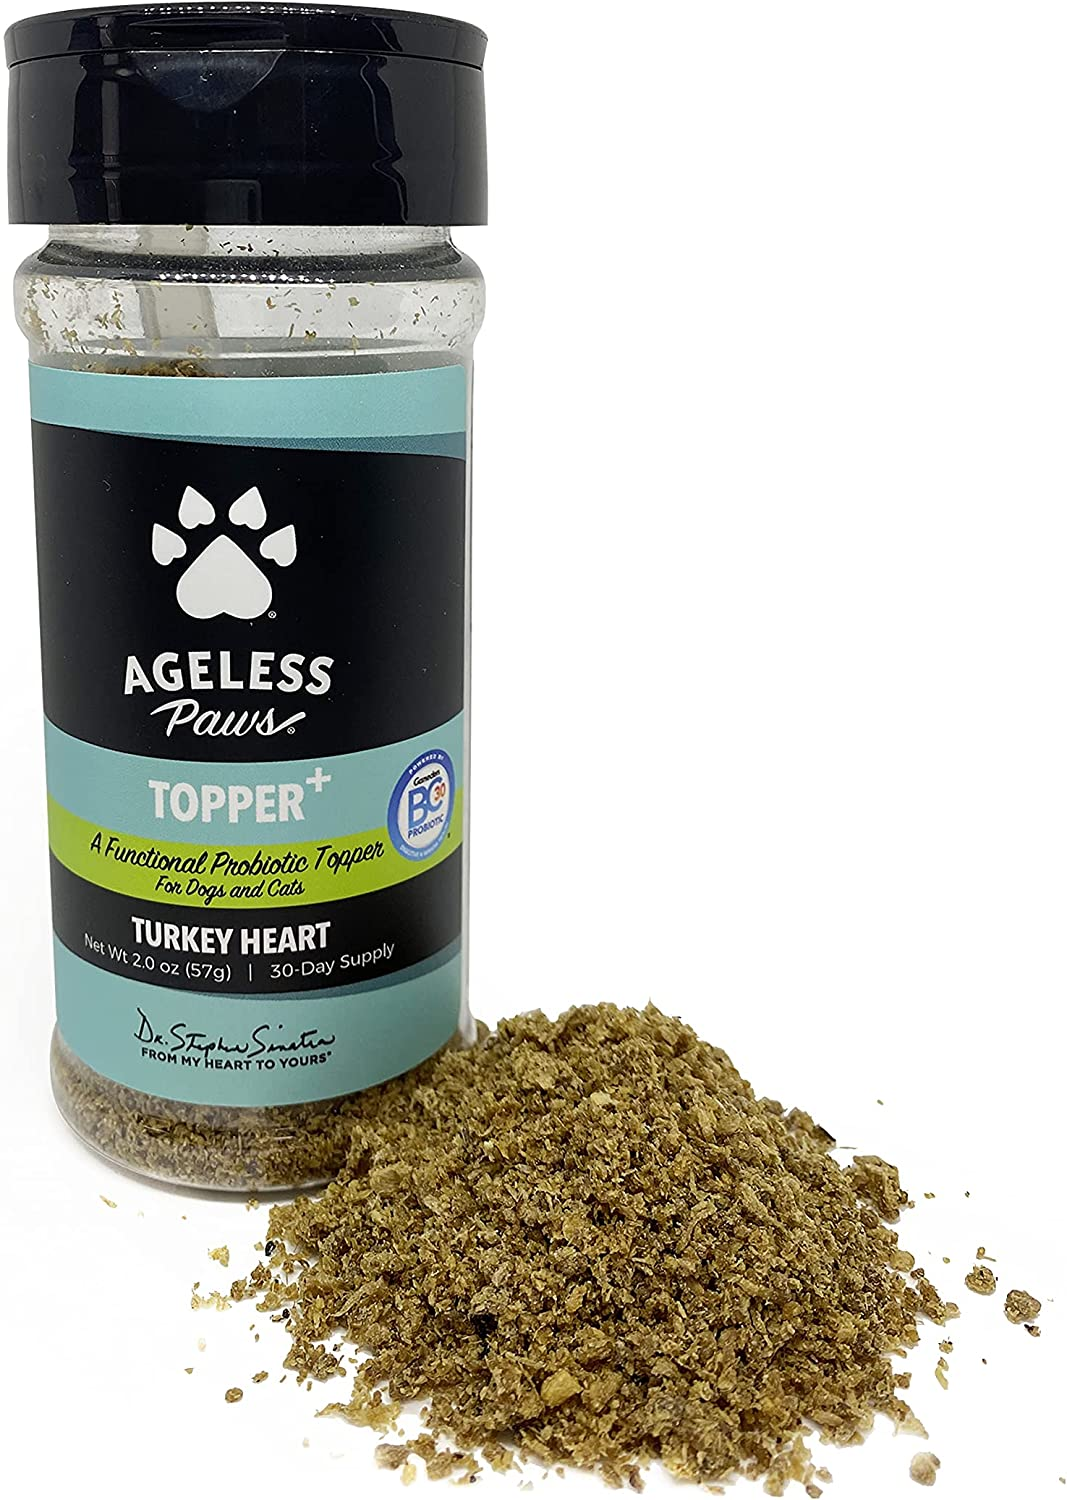 Ageless Paws Turkey Heart Topper+ Probiotics Functional Food Topper for Dogs and Cats, Freeze-Dried, Limited-Ingredient, Organ Meat Pet Food Topper (2 oz / 57 g)